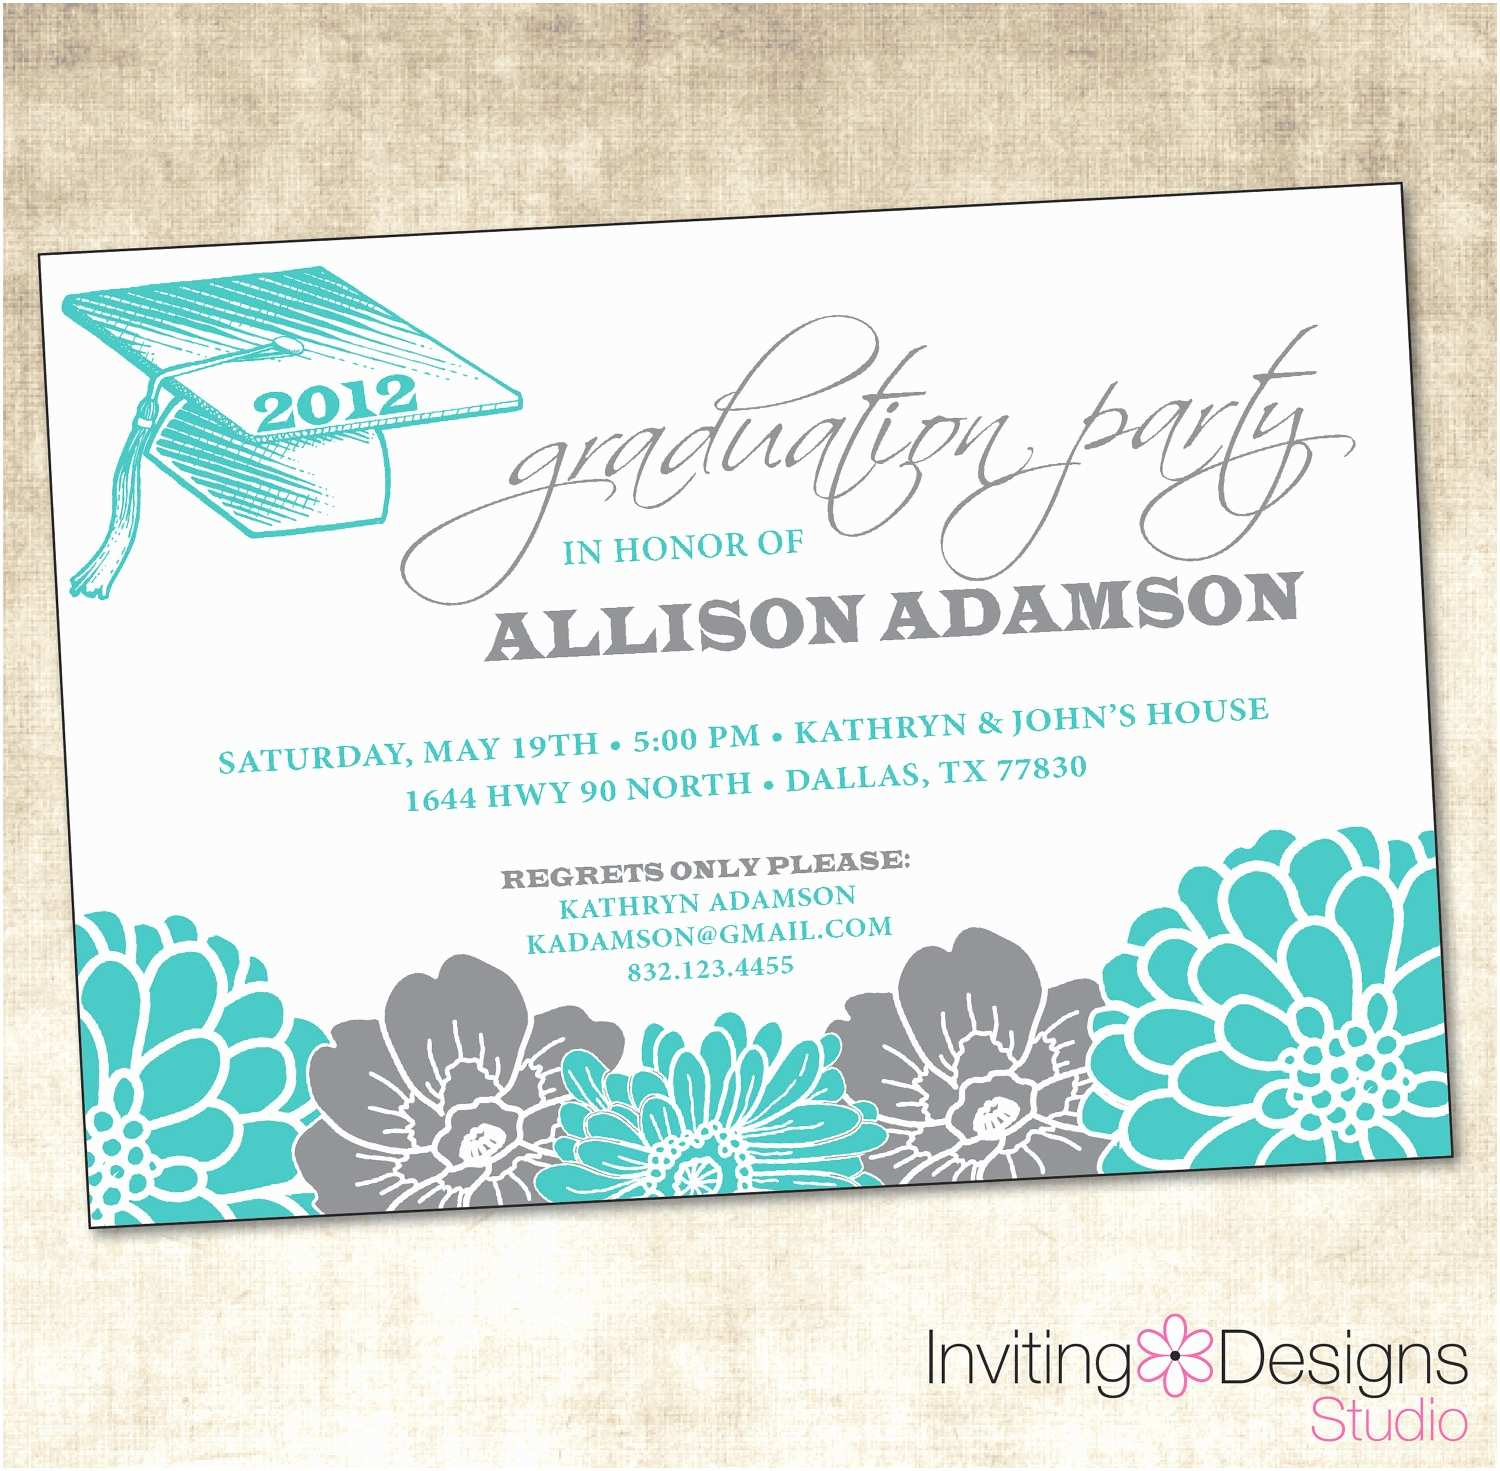 Cheap Graduation Invitations Graduation Party Invitations Wording Examples Designs